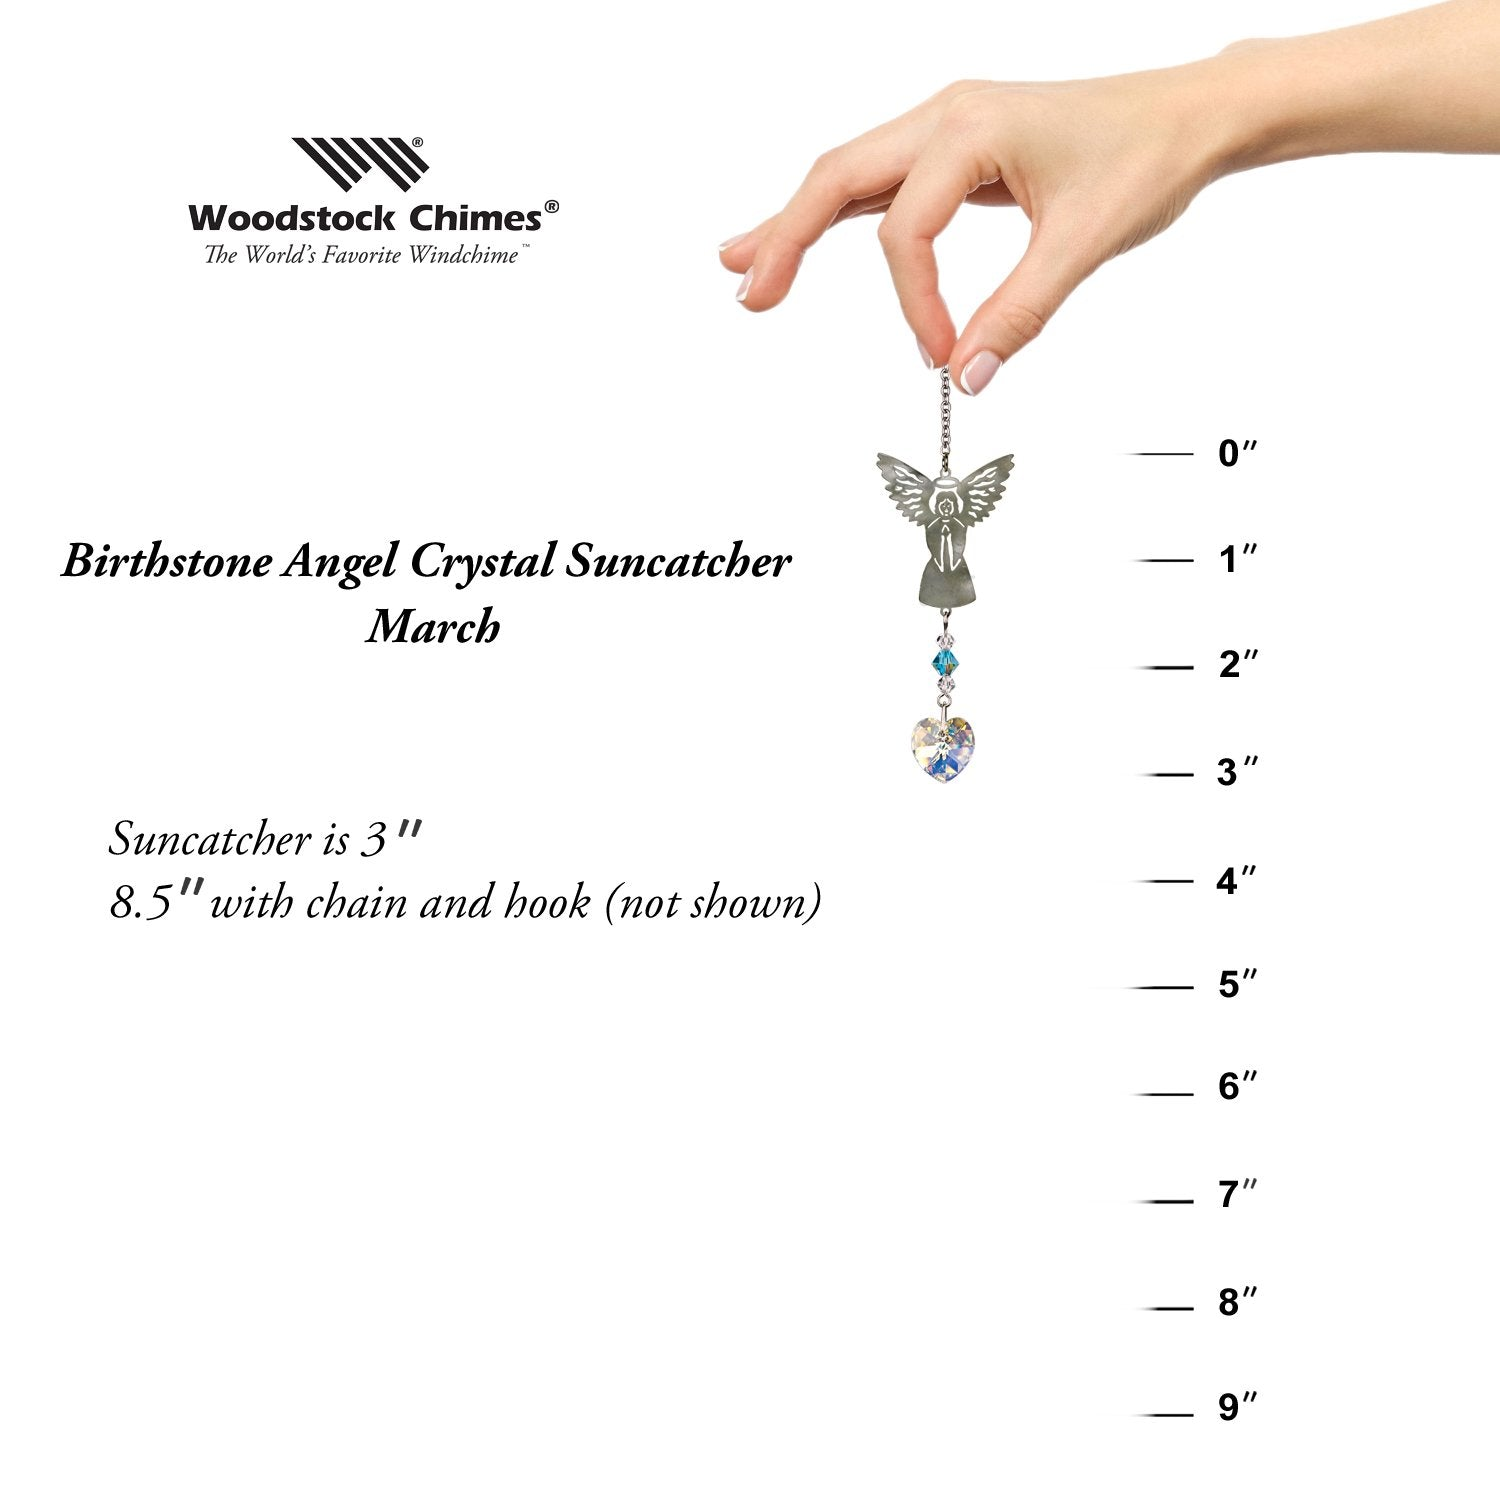 Birthstone Angel Crystal Suncatcher - March proportion image